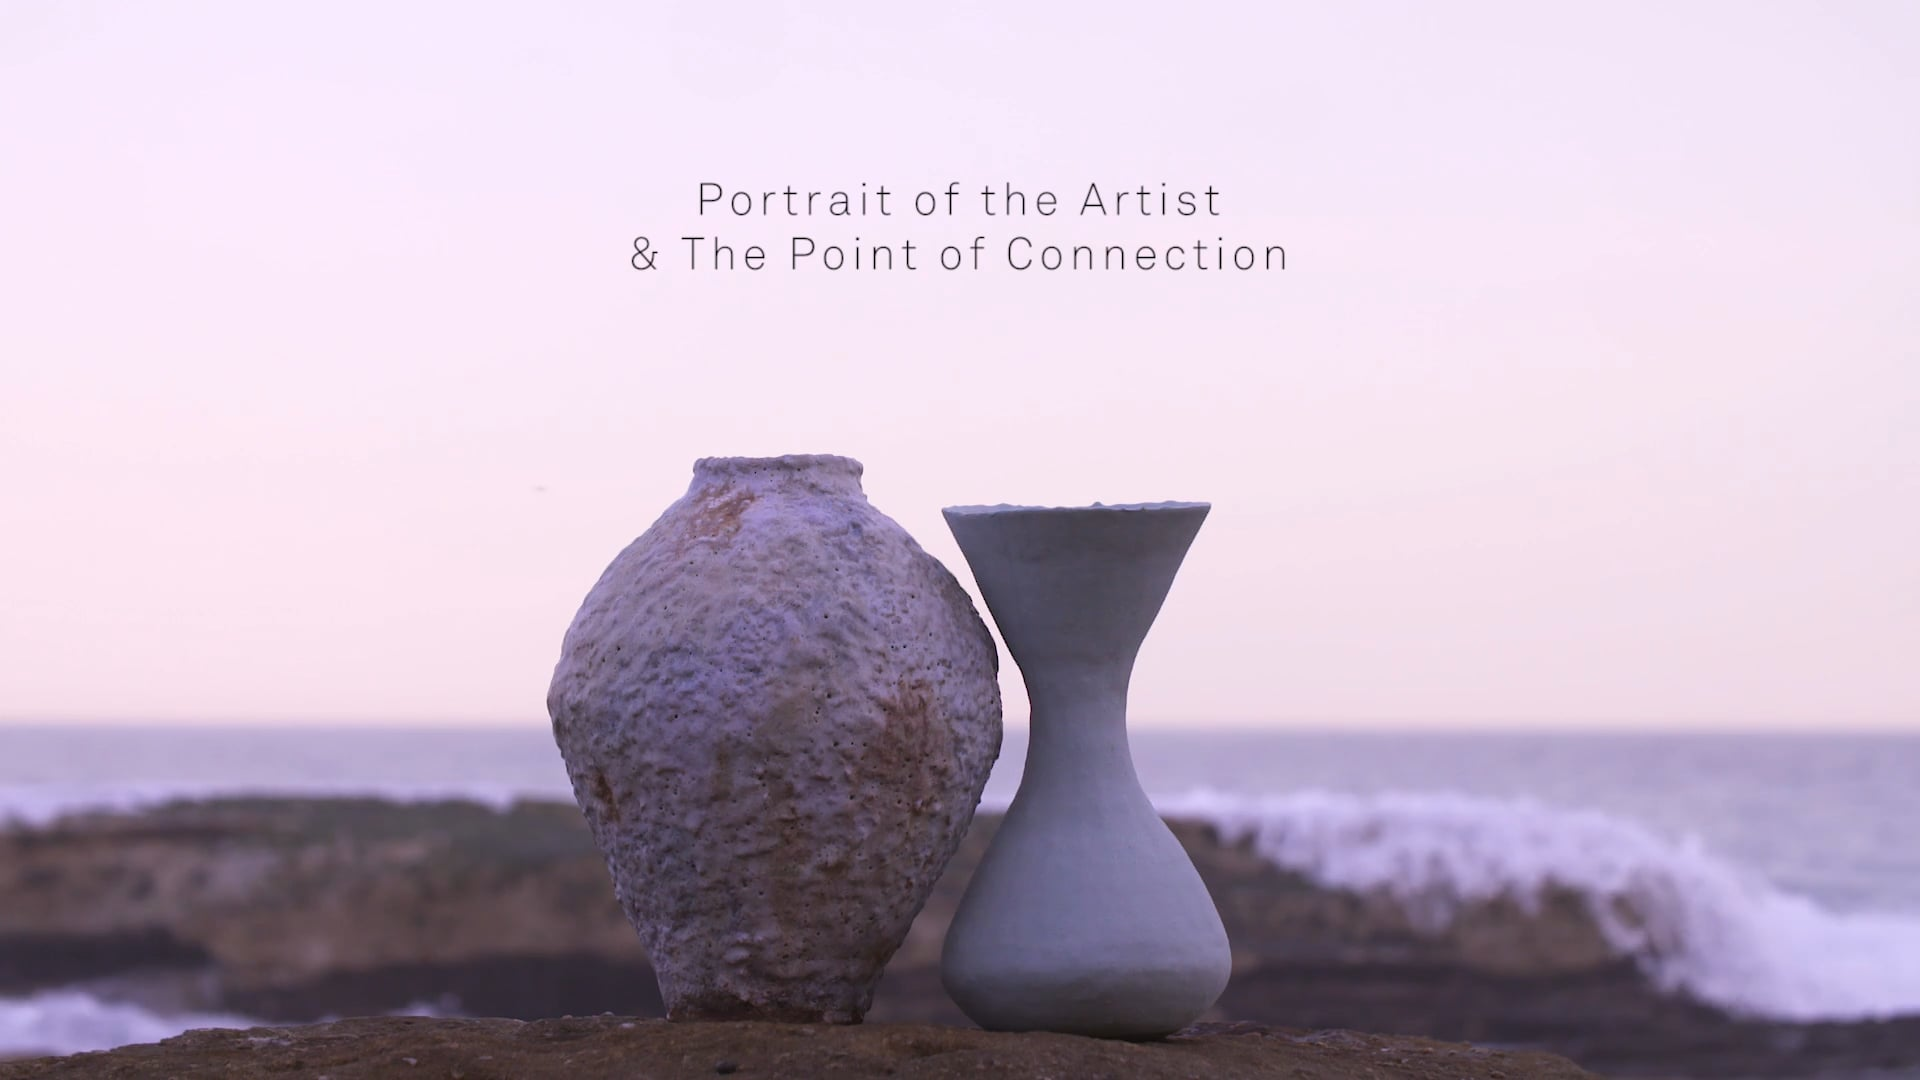 Portrait of the Artist & The Point of Connection, feat. Alana Wilson